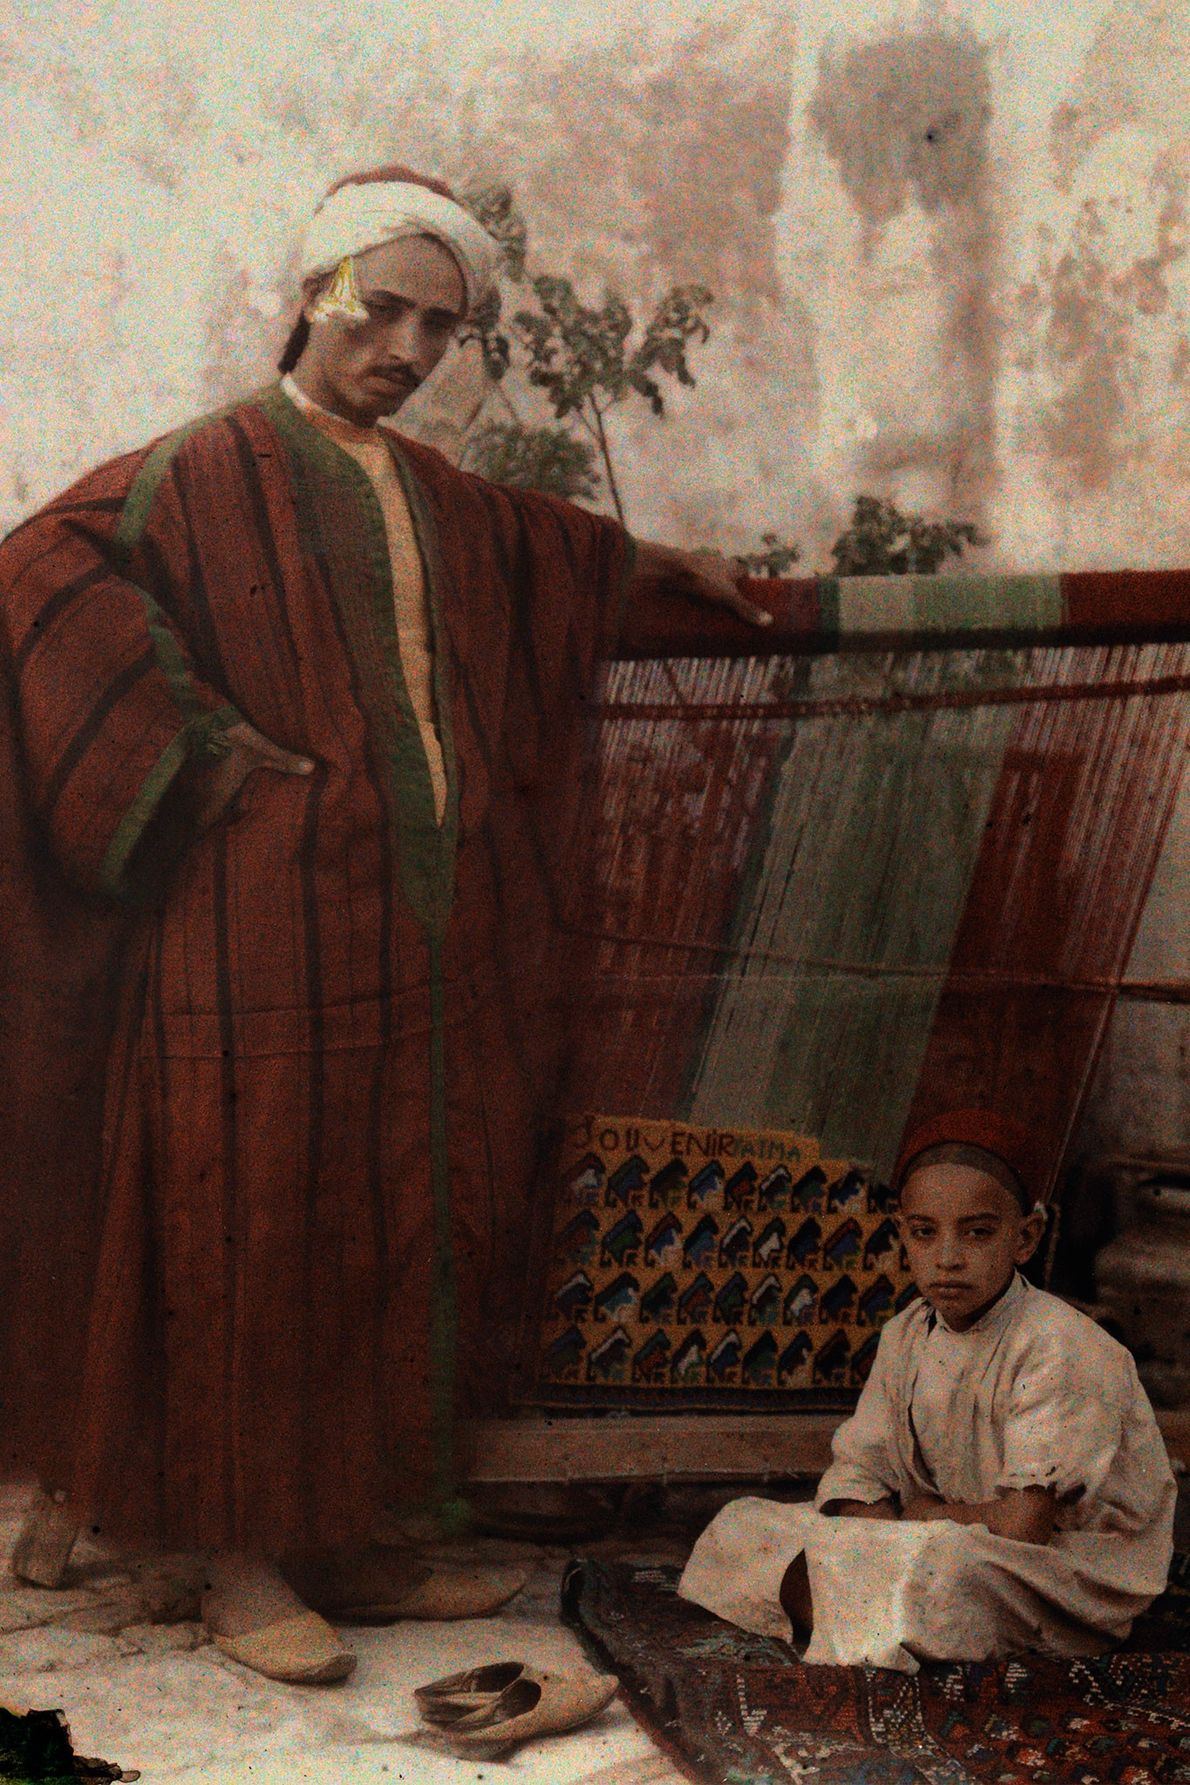 A father and son in the early 1900s pose next to a weaving machine in Tunisia.